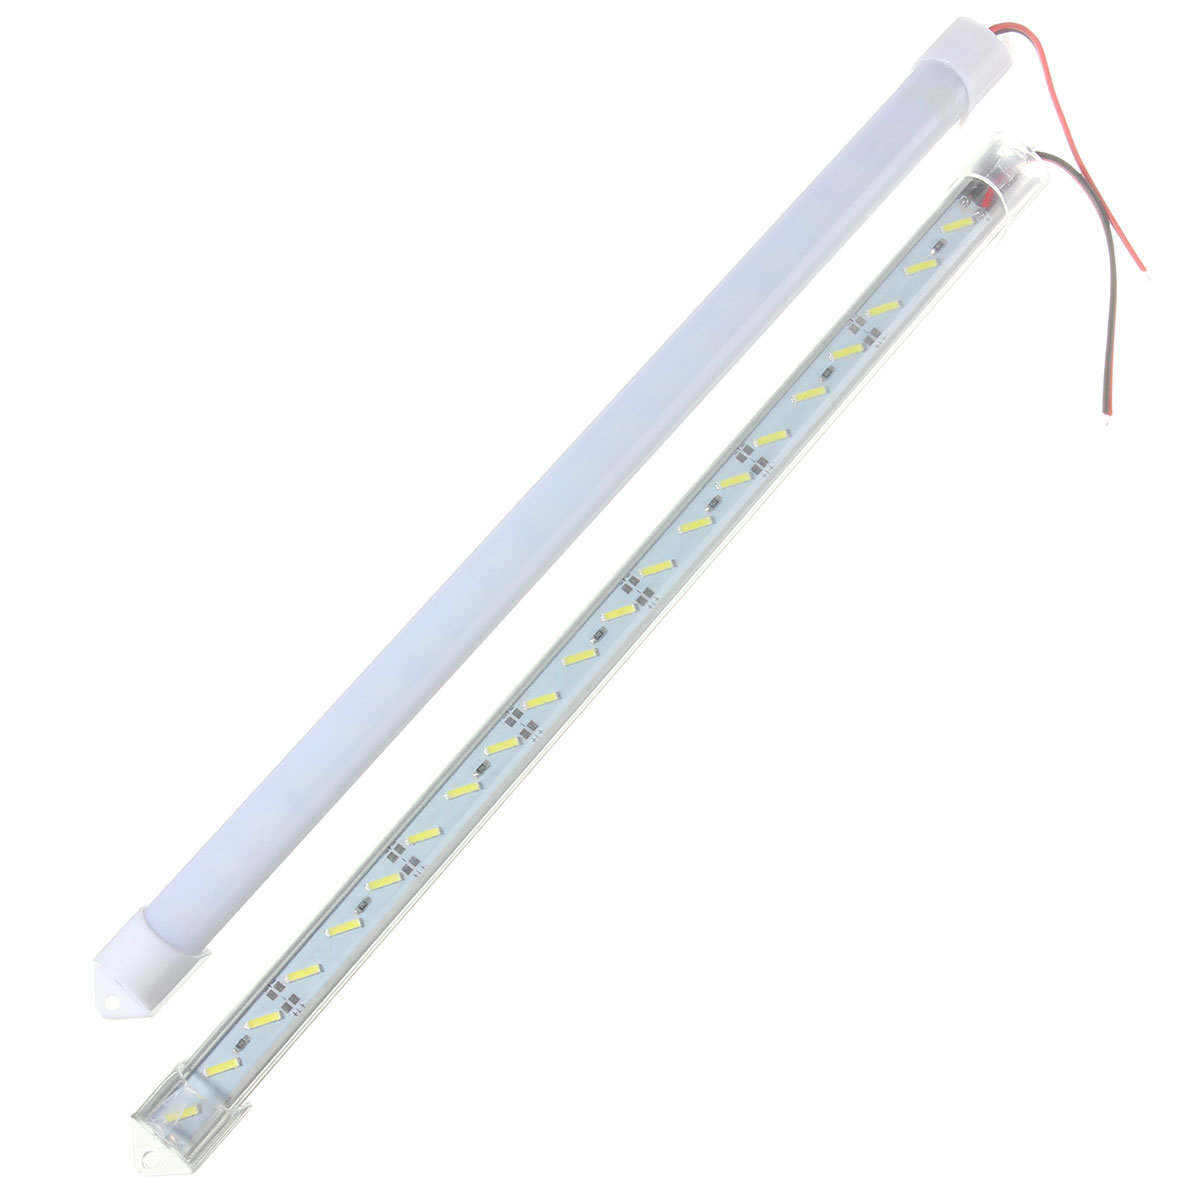 U shell Profile 8520 LED rigid Strip 30cm 36leds led strip bar for cabinet closet kitchen with cover double chip supper bright